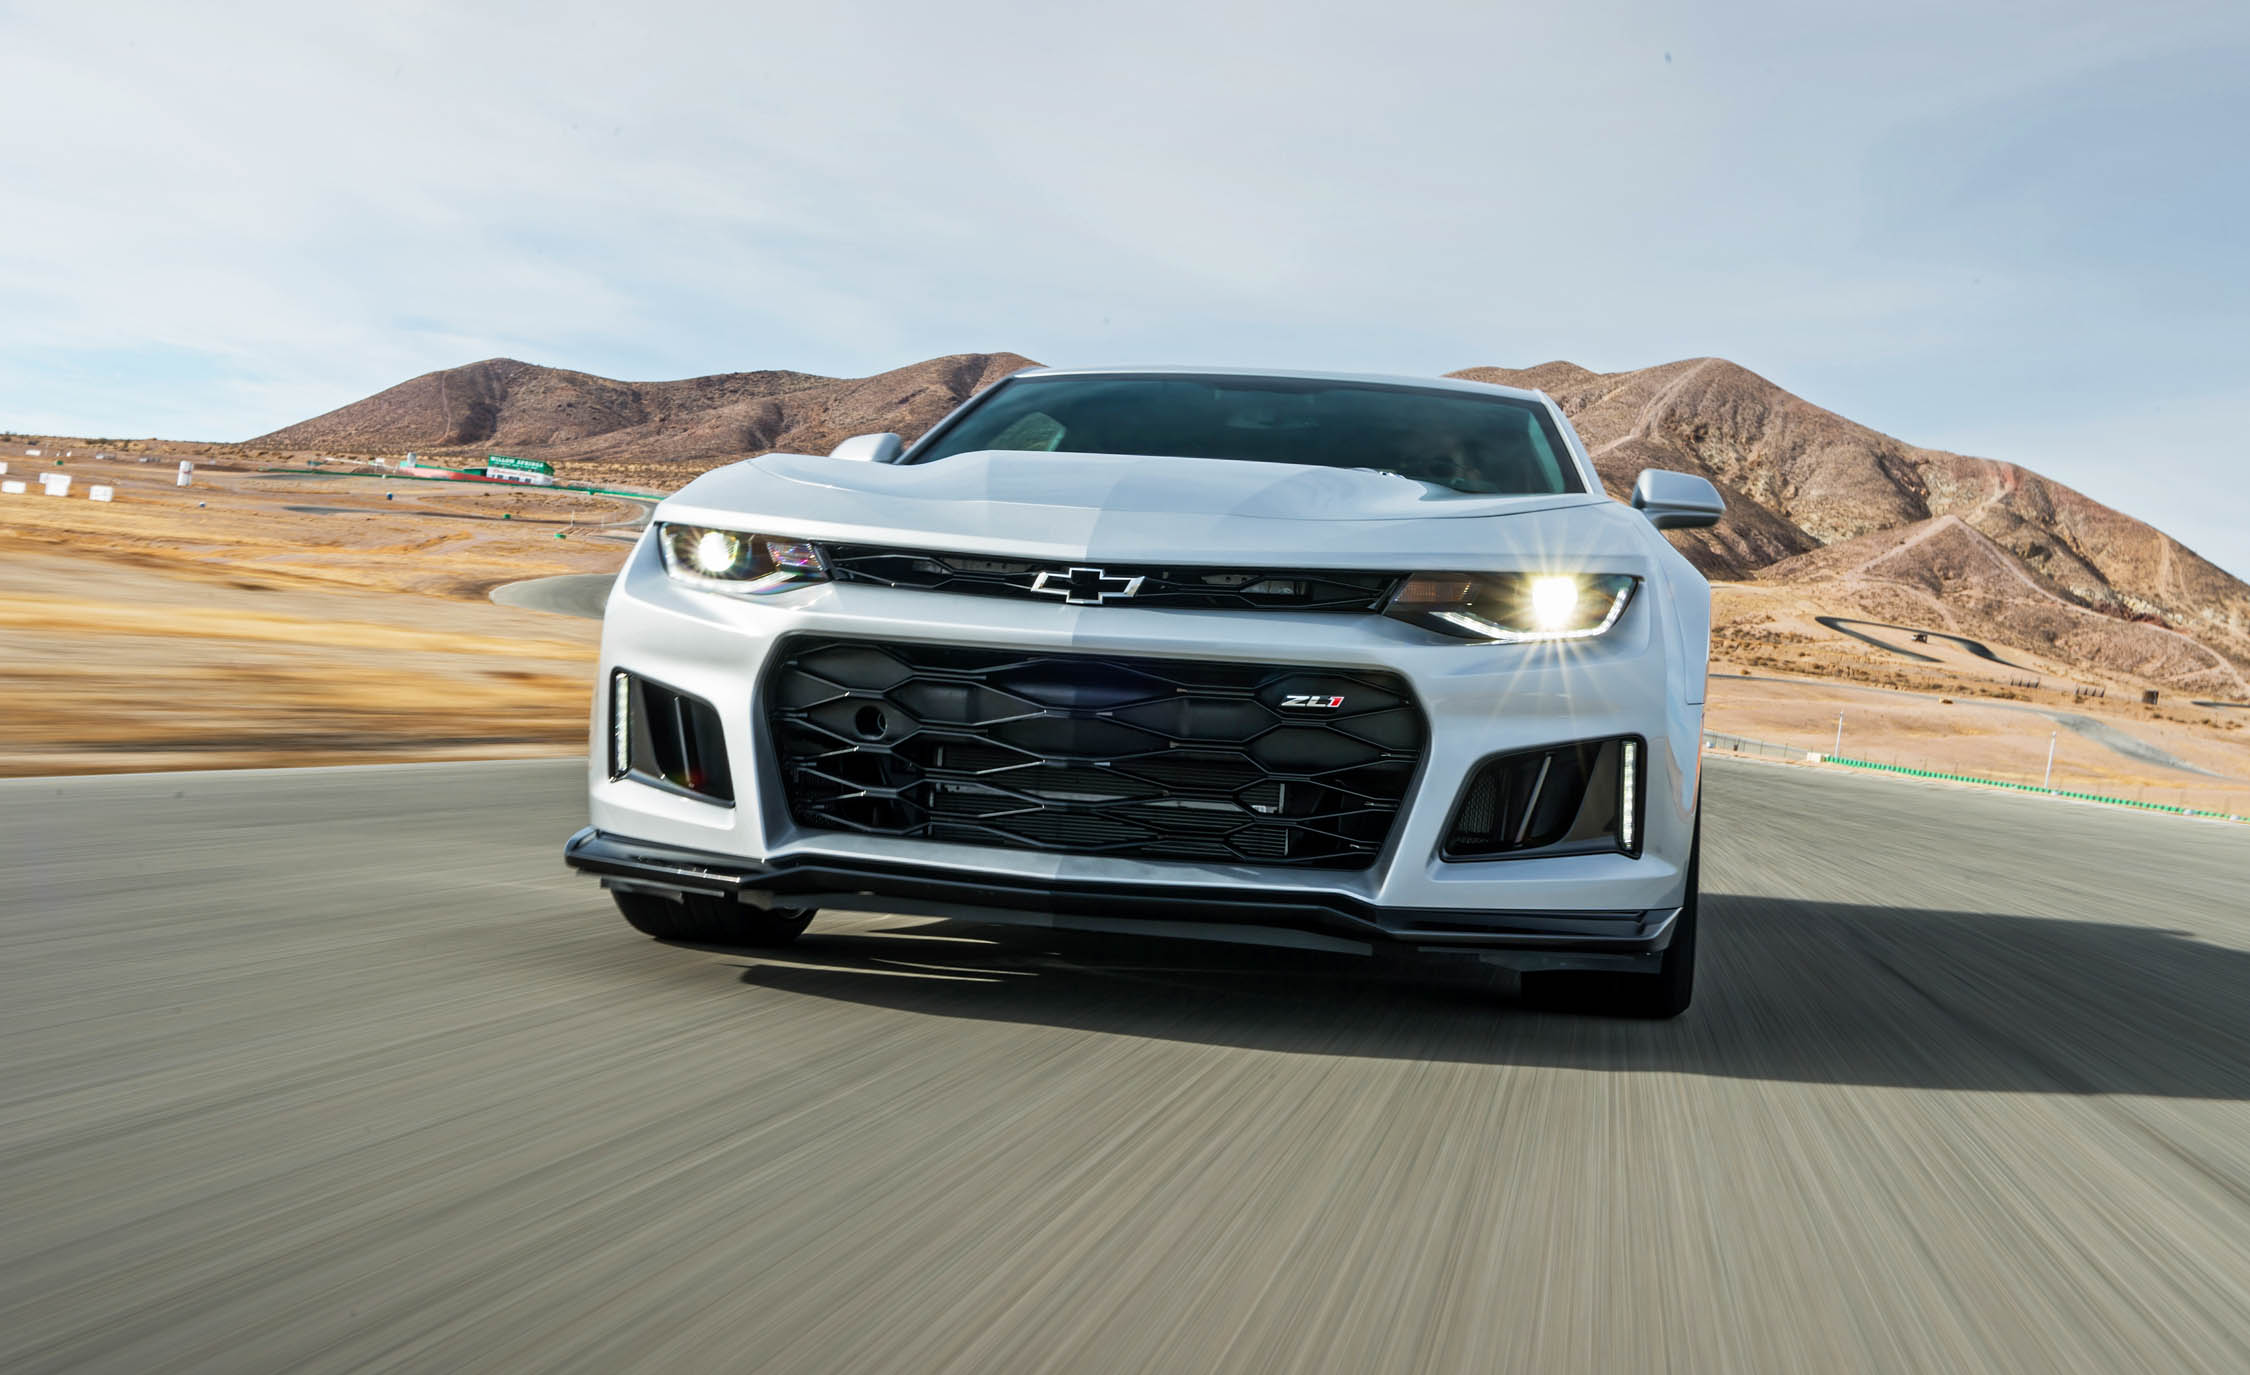 2017 chevrolet camaro zl1 cars exclusive videos and photos updates